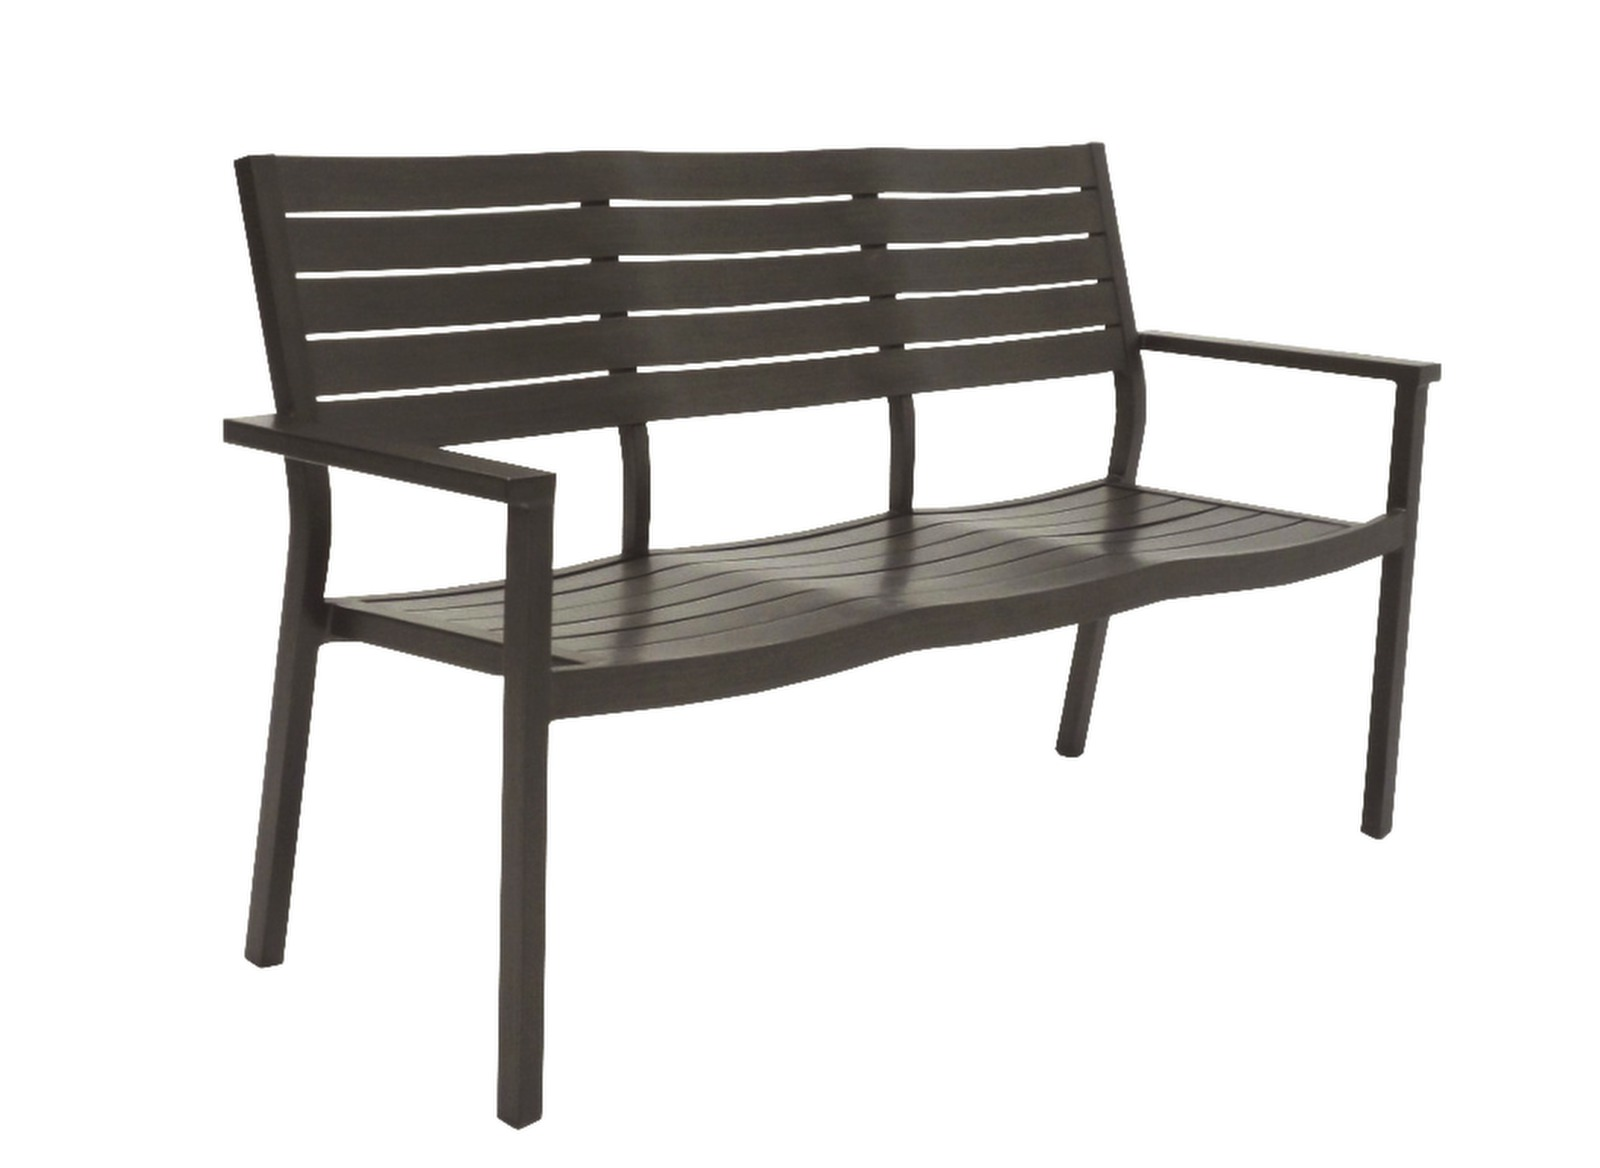 banc de jardin aluminium 3 places latino oc o. Black Bedroom Furniture Sets. Home Design Ideas